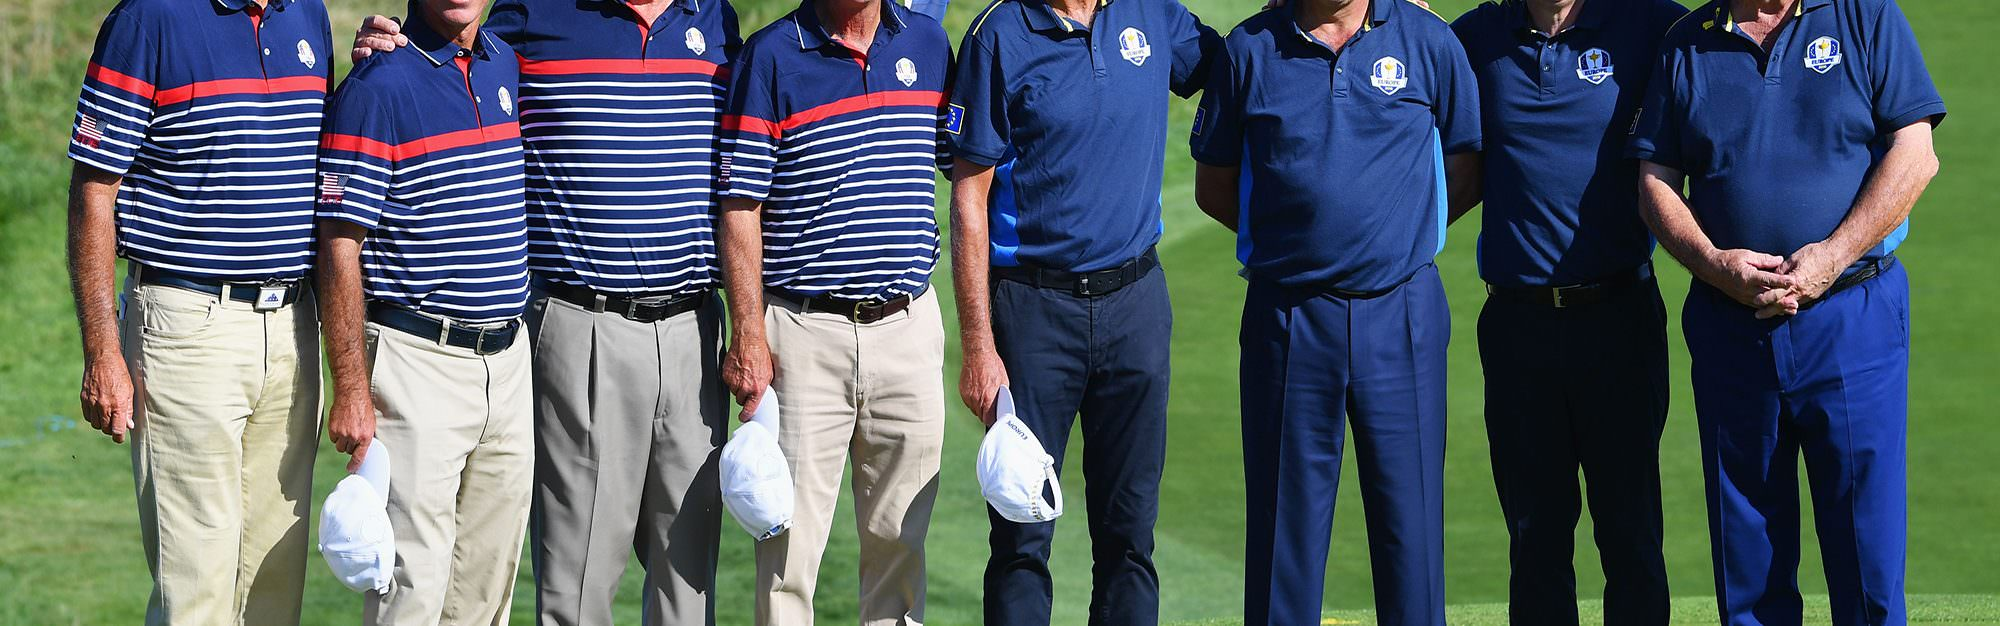 Is a Senior Ryder Cup on the horizon? McGinley's keen to open talks